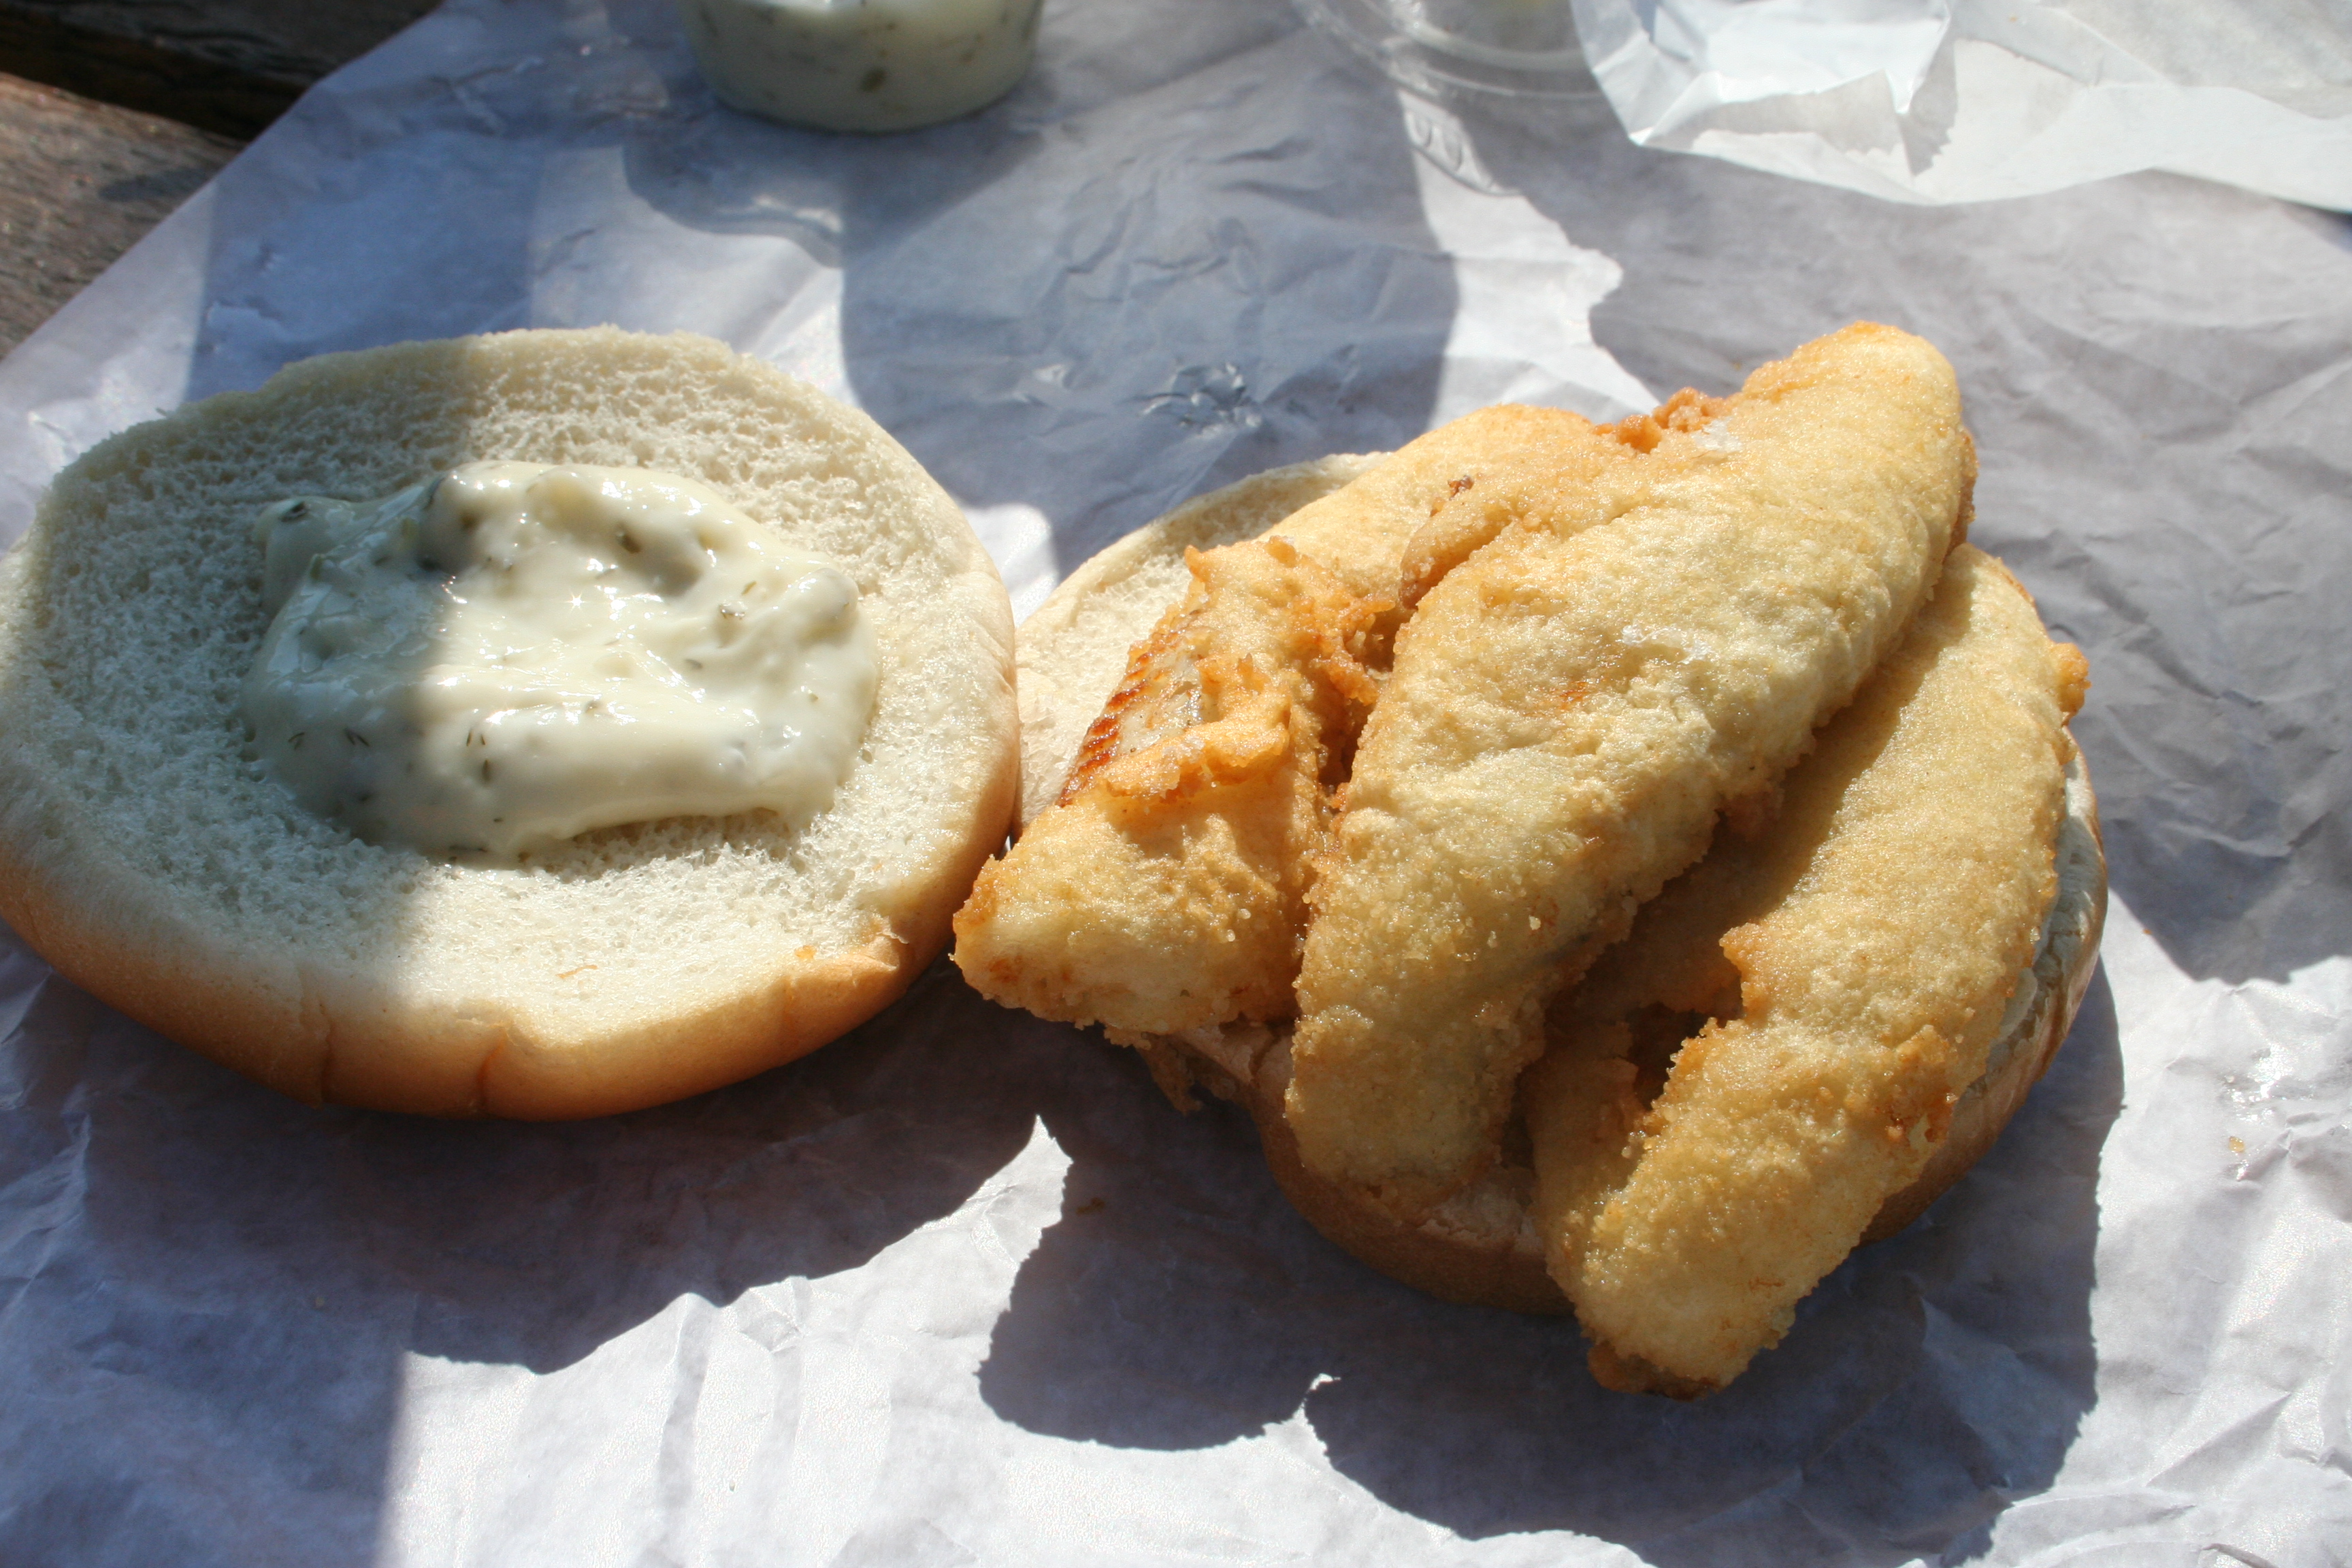 Top 8 places to enjoy perch in ohio 39 s lake erie shores for New sandusky fish company